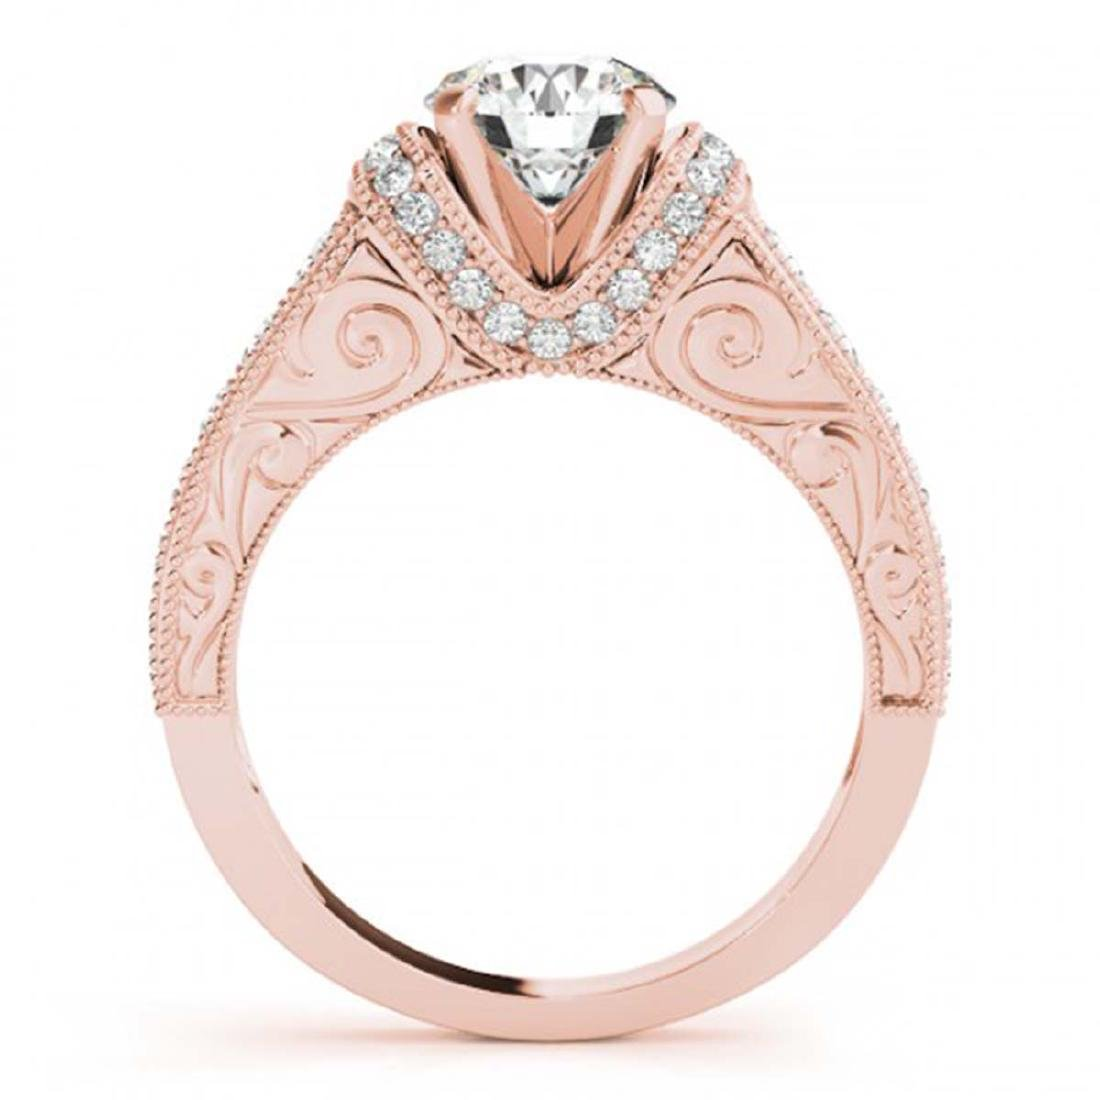 1.75 ctw VS/SI Diamond Ring 14K Rose Gold - REF-374W6H - 2